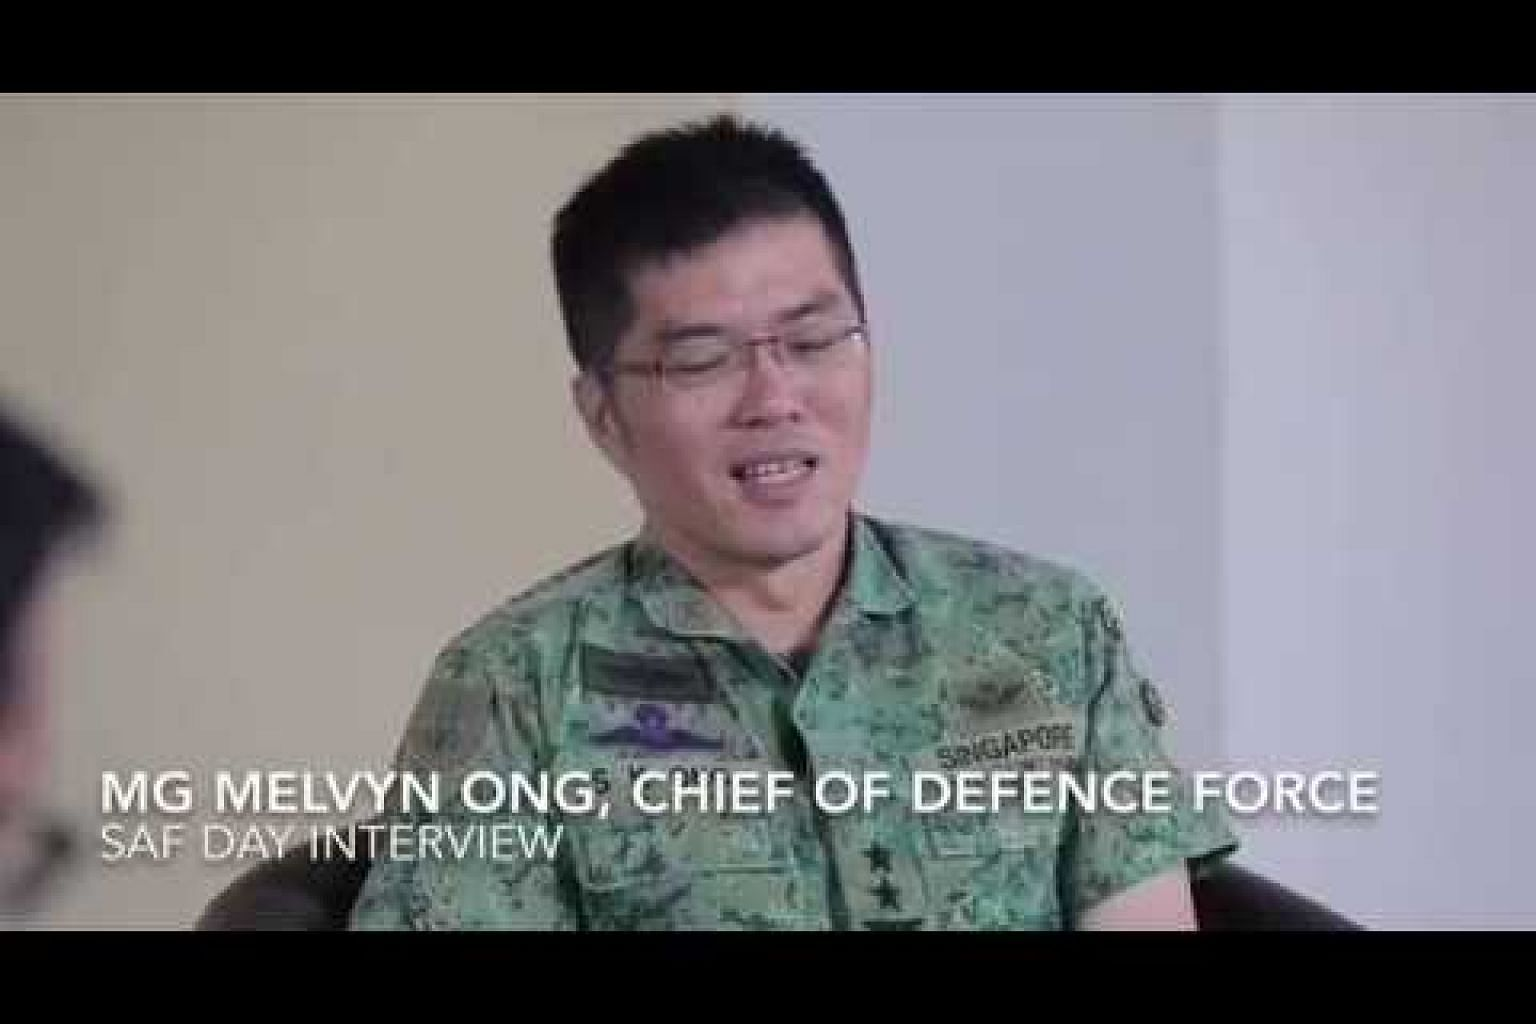 SAF Day interview with Chief of Defence Force Major-General Melvyn Ong